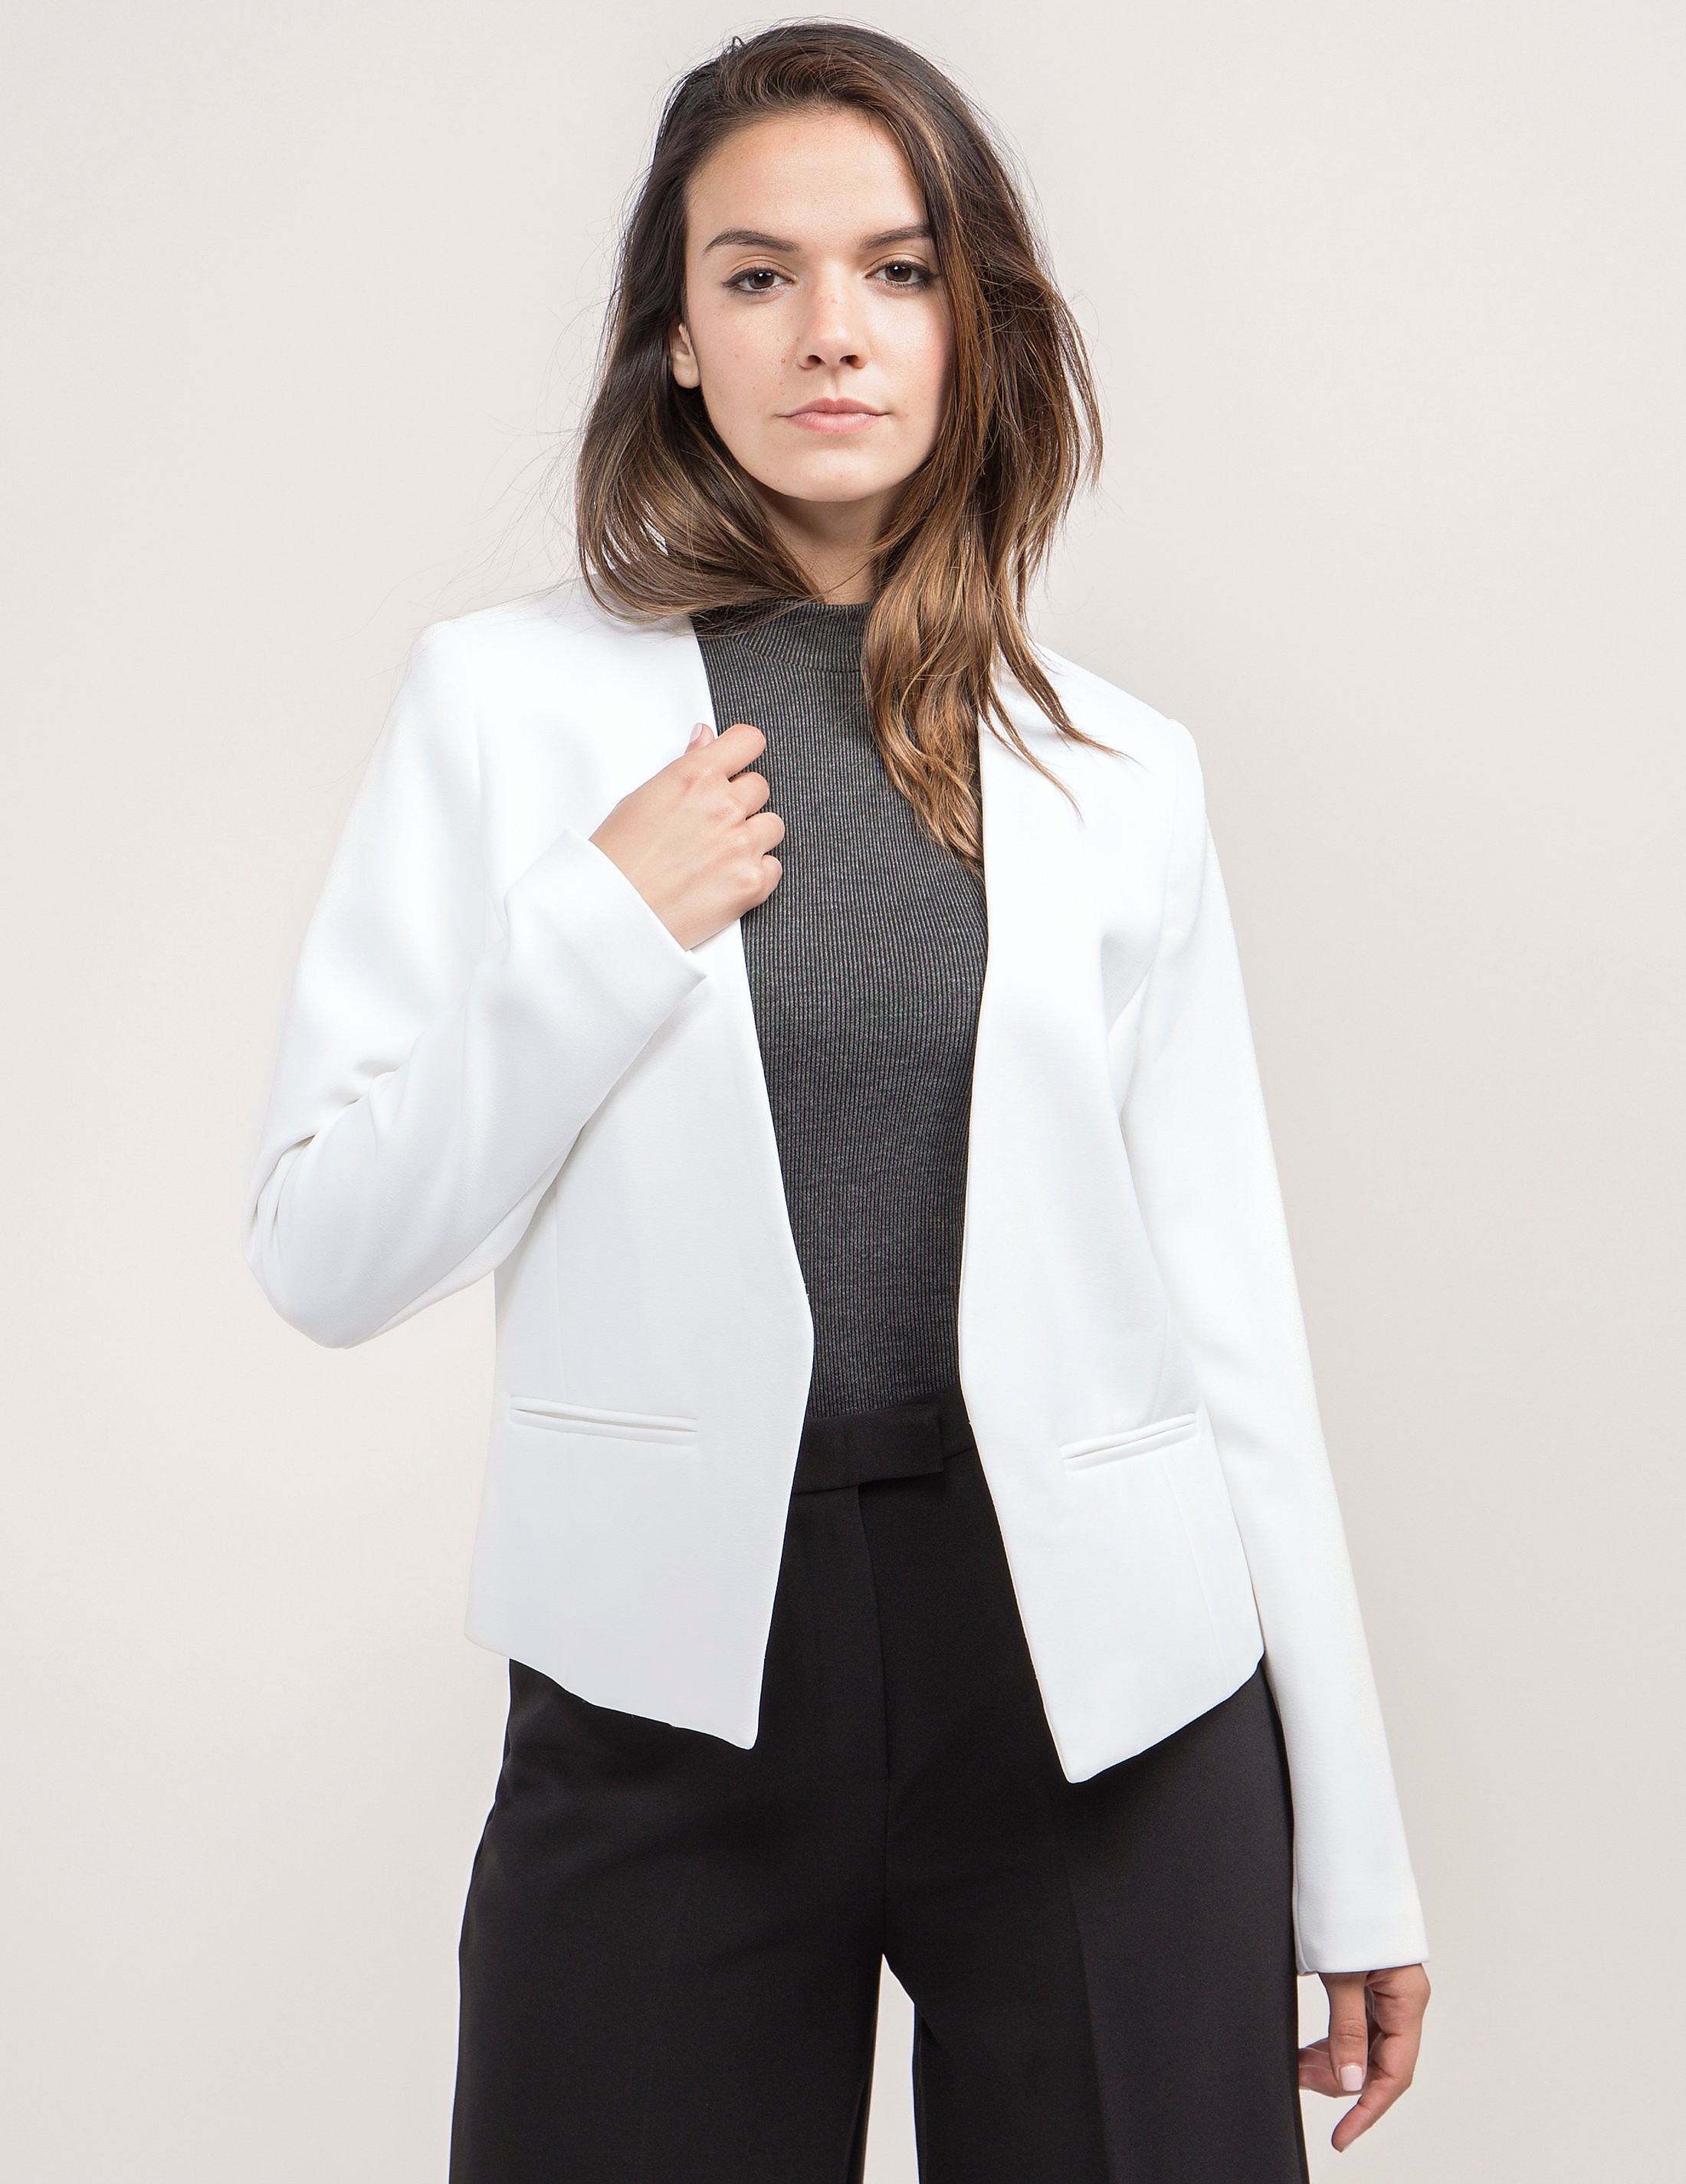 Michael Kors Dress Jacket